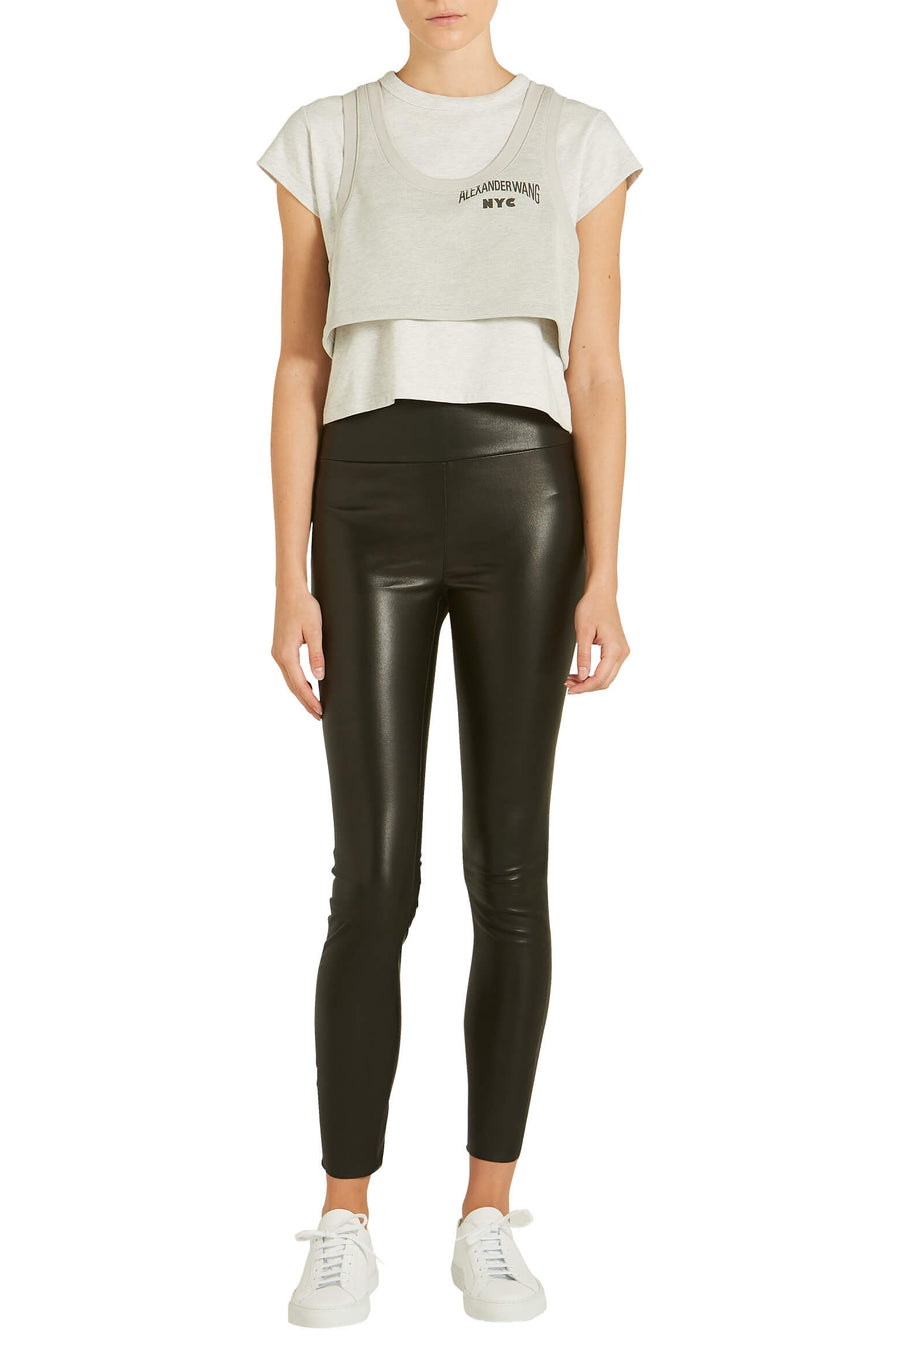 SPRWMN High Waist Ankle Legging from The New Trend